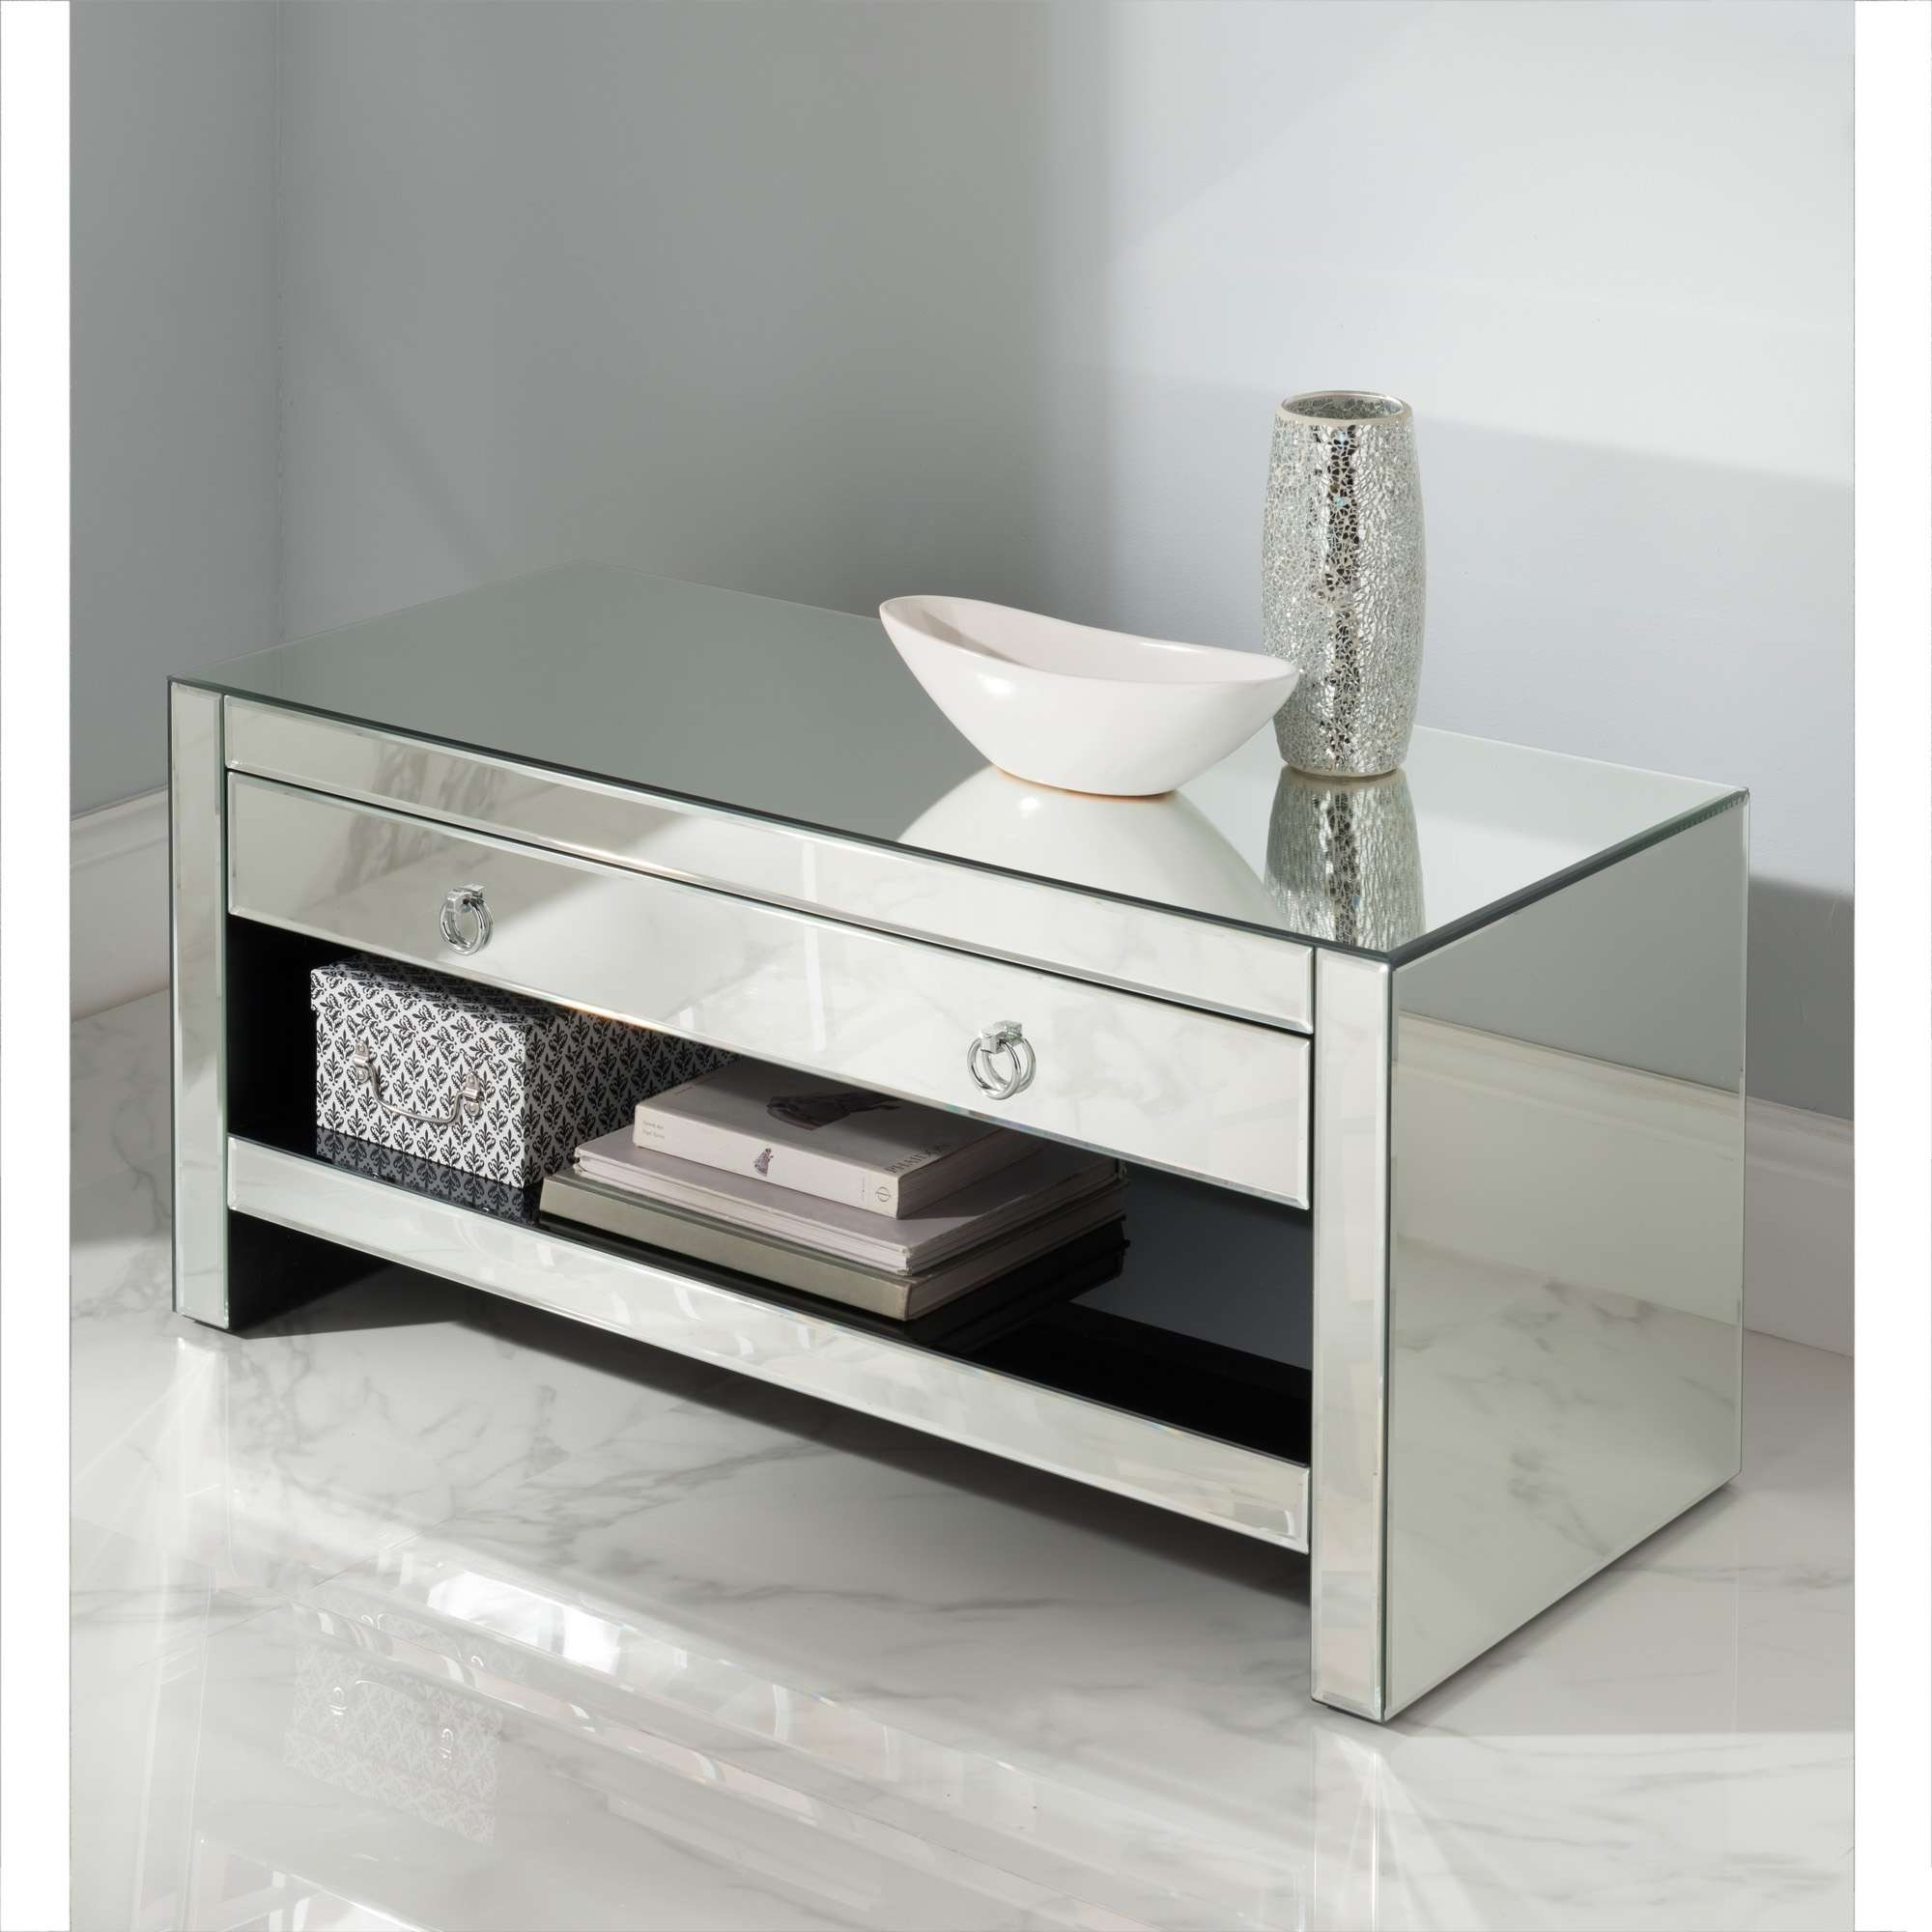 Mirrored Tv Cabinet | Glass Venetian Furniture | Homesdirect365 Throughout Mirror Tv Cabinets (View 9 of 20)